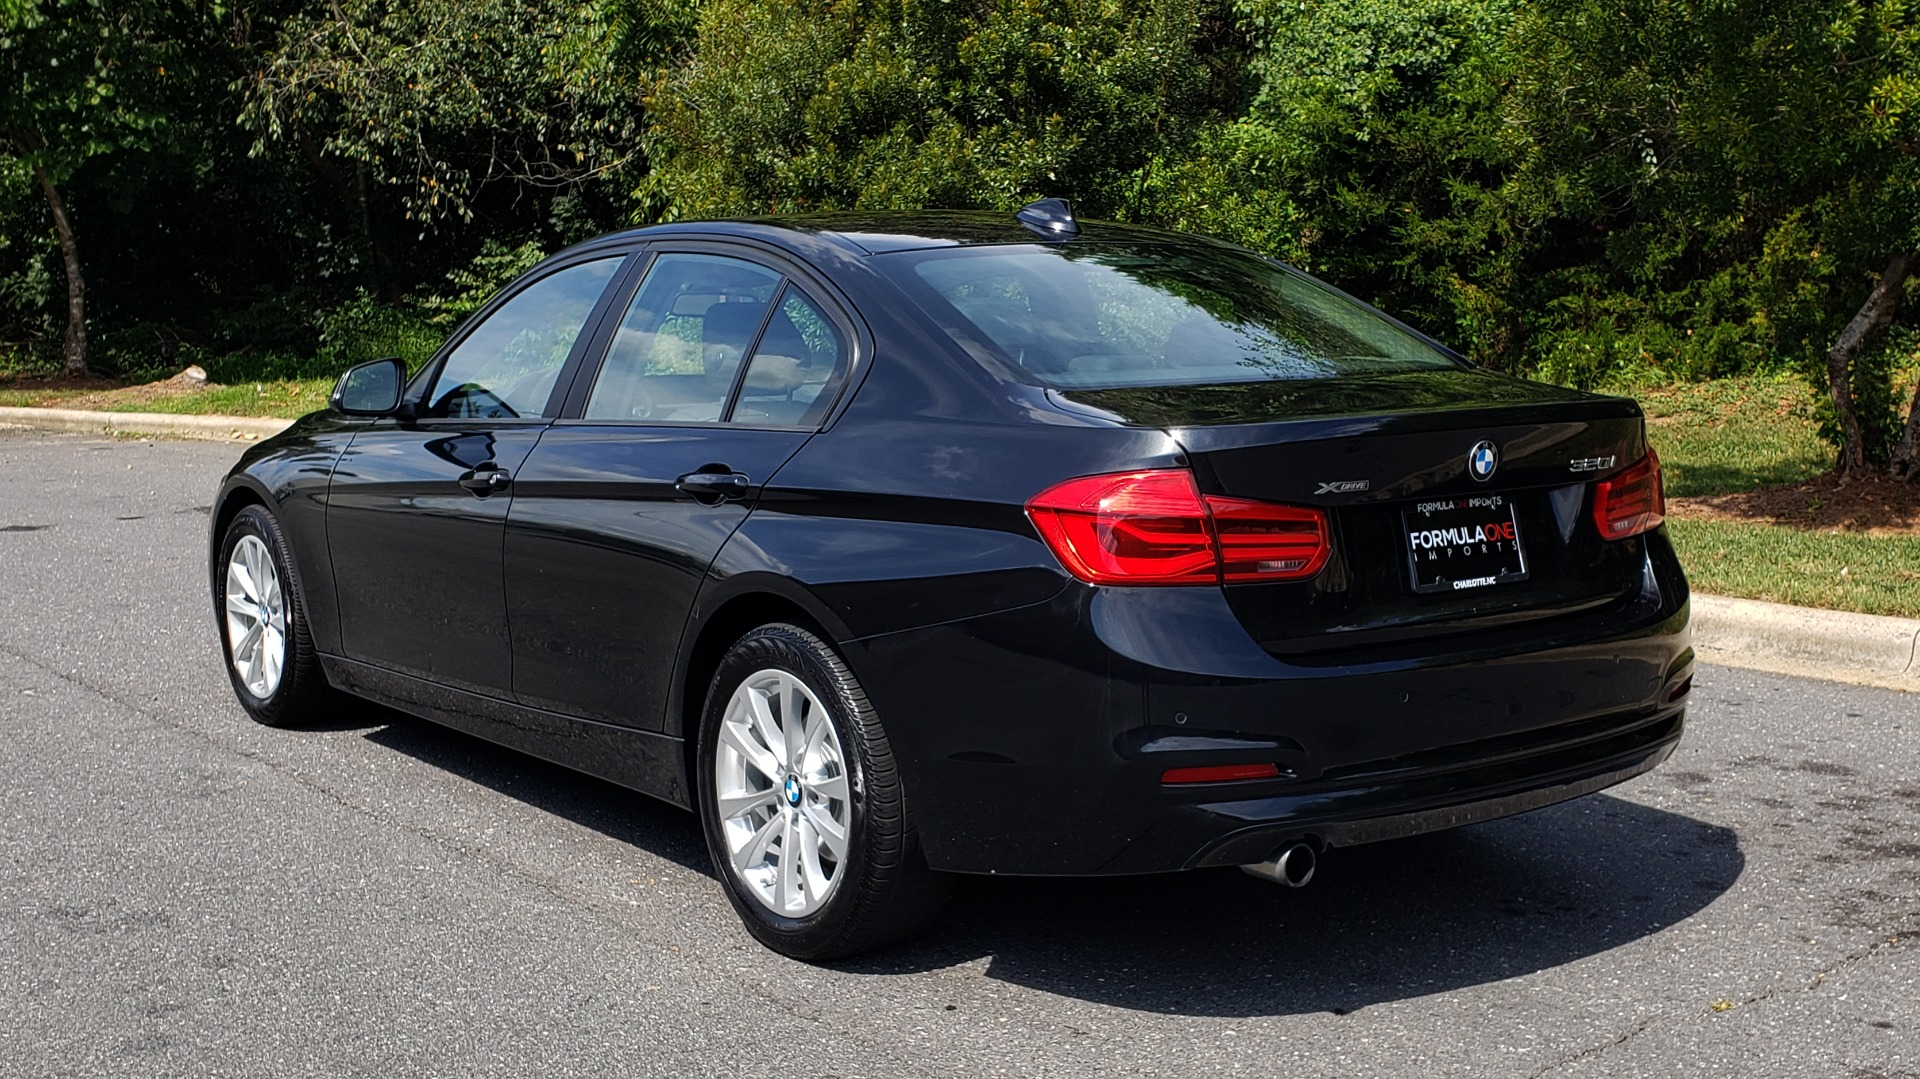 Used 2017 BMW 3 SERIES 320I XDRIVE / DRVR ASST / NAV / SUNROOF / HTD STS / REARVIEW for sale $21,995 at Formula Imports in Charlotte NC 28227 3